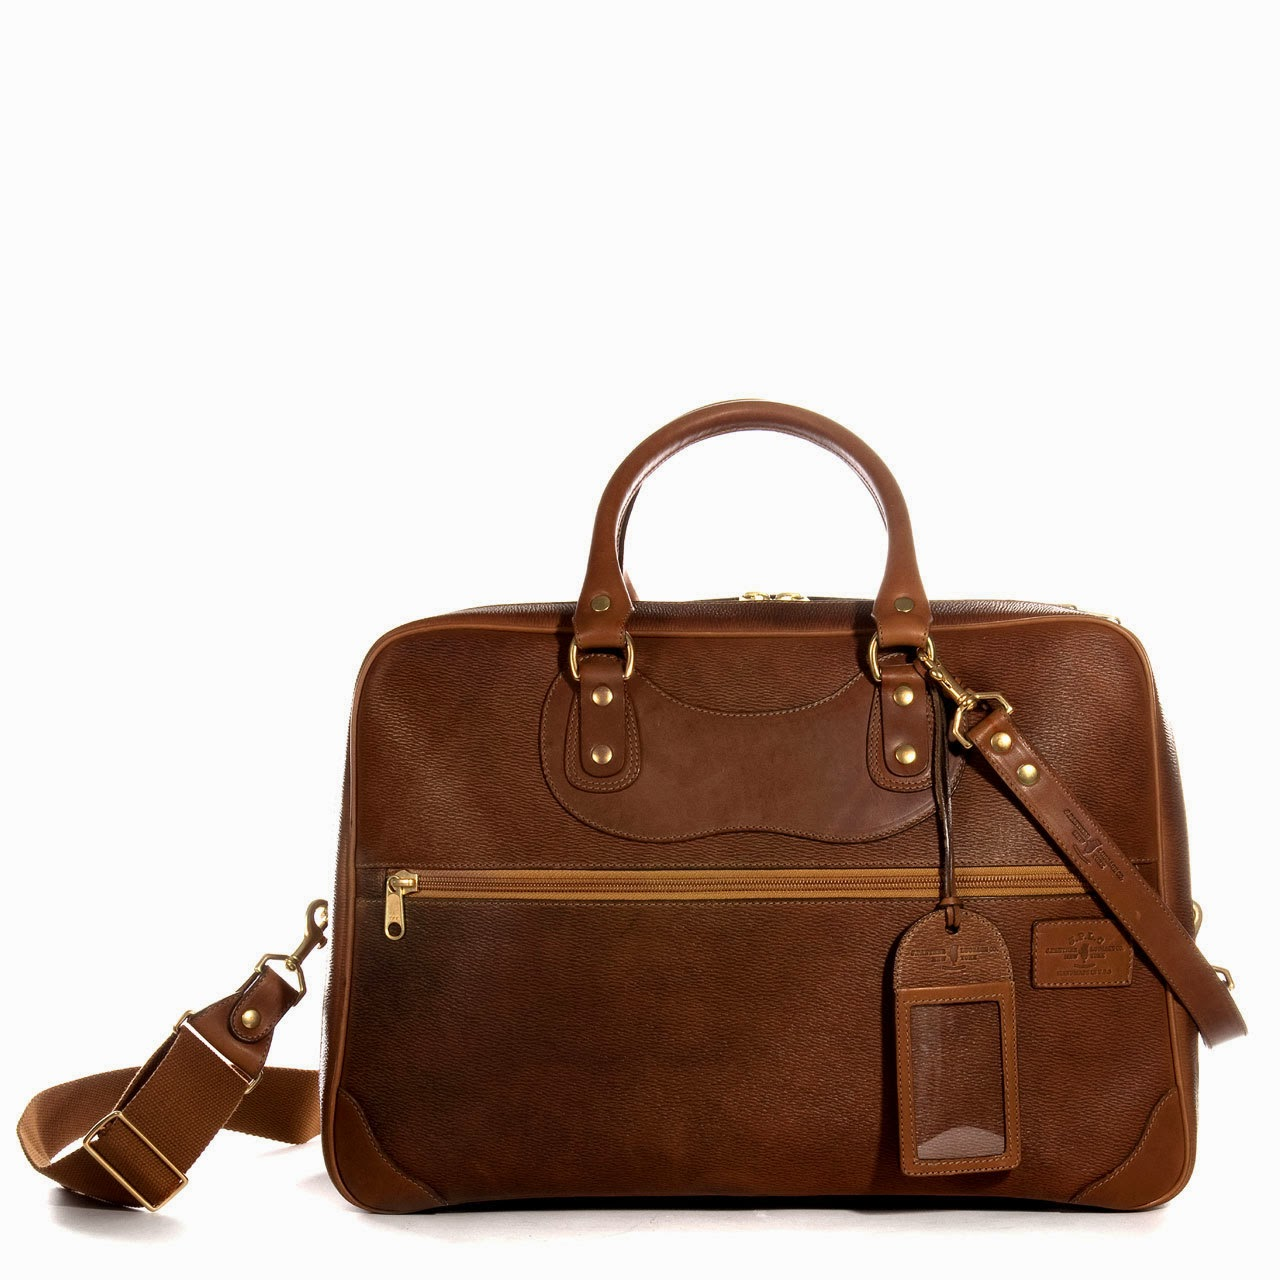 J. Panther Luggage Co.: The Perfect Weekender